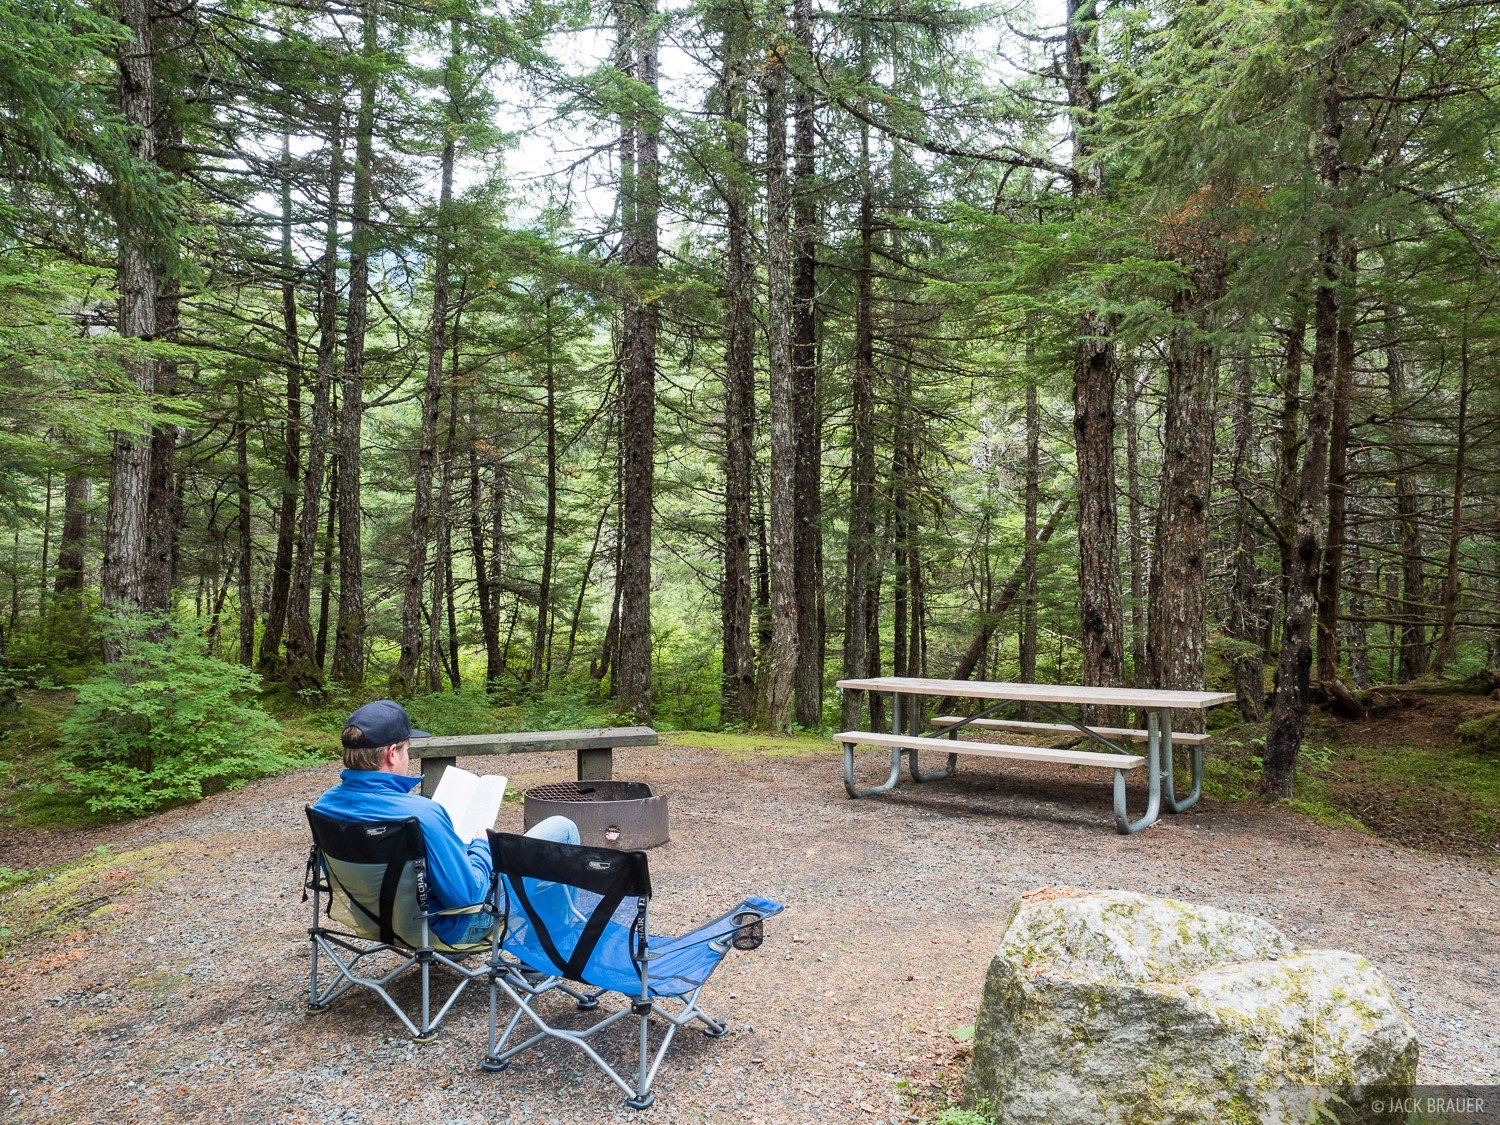 Campsite at the Chilkoot Lake campground near Haines, Alaska.